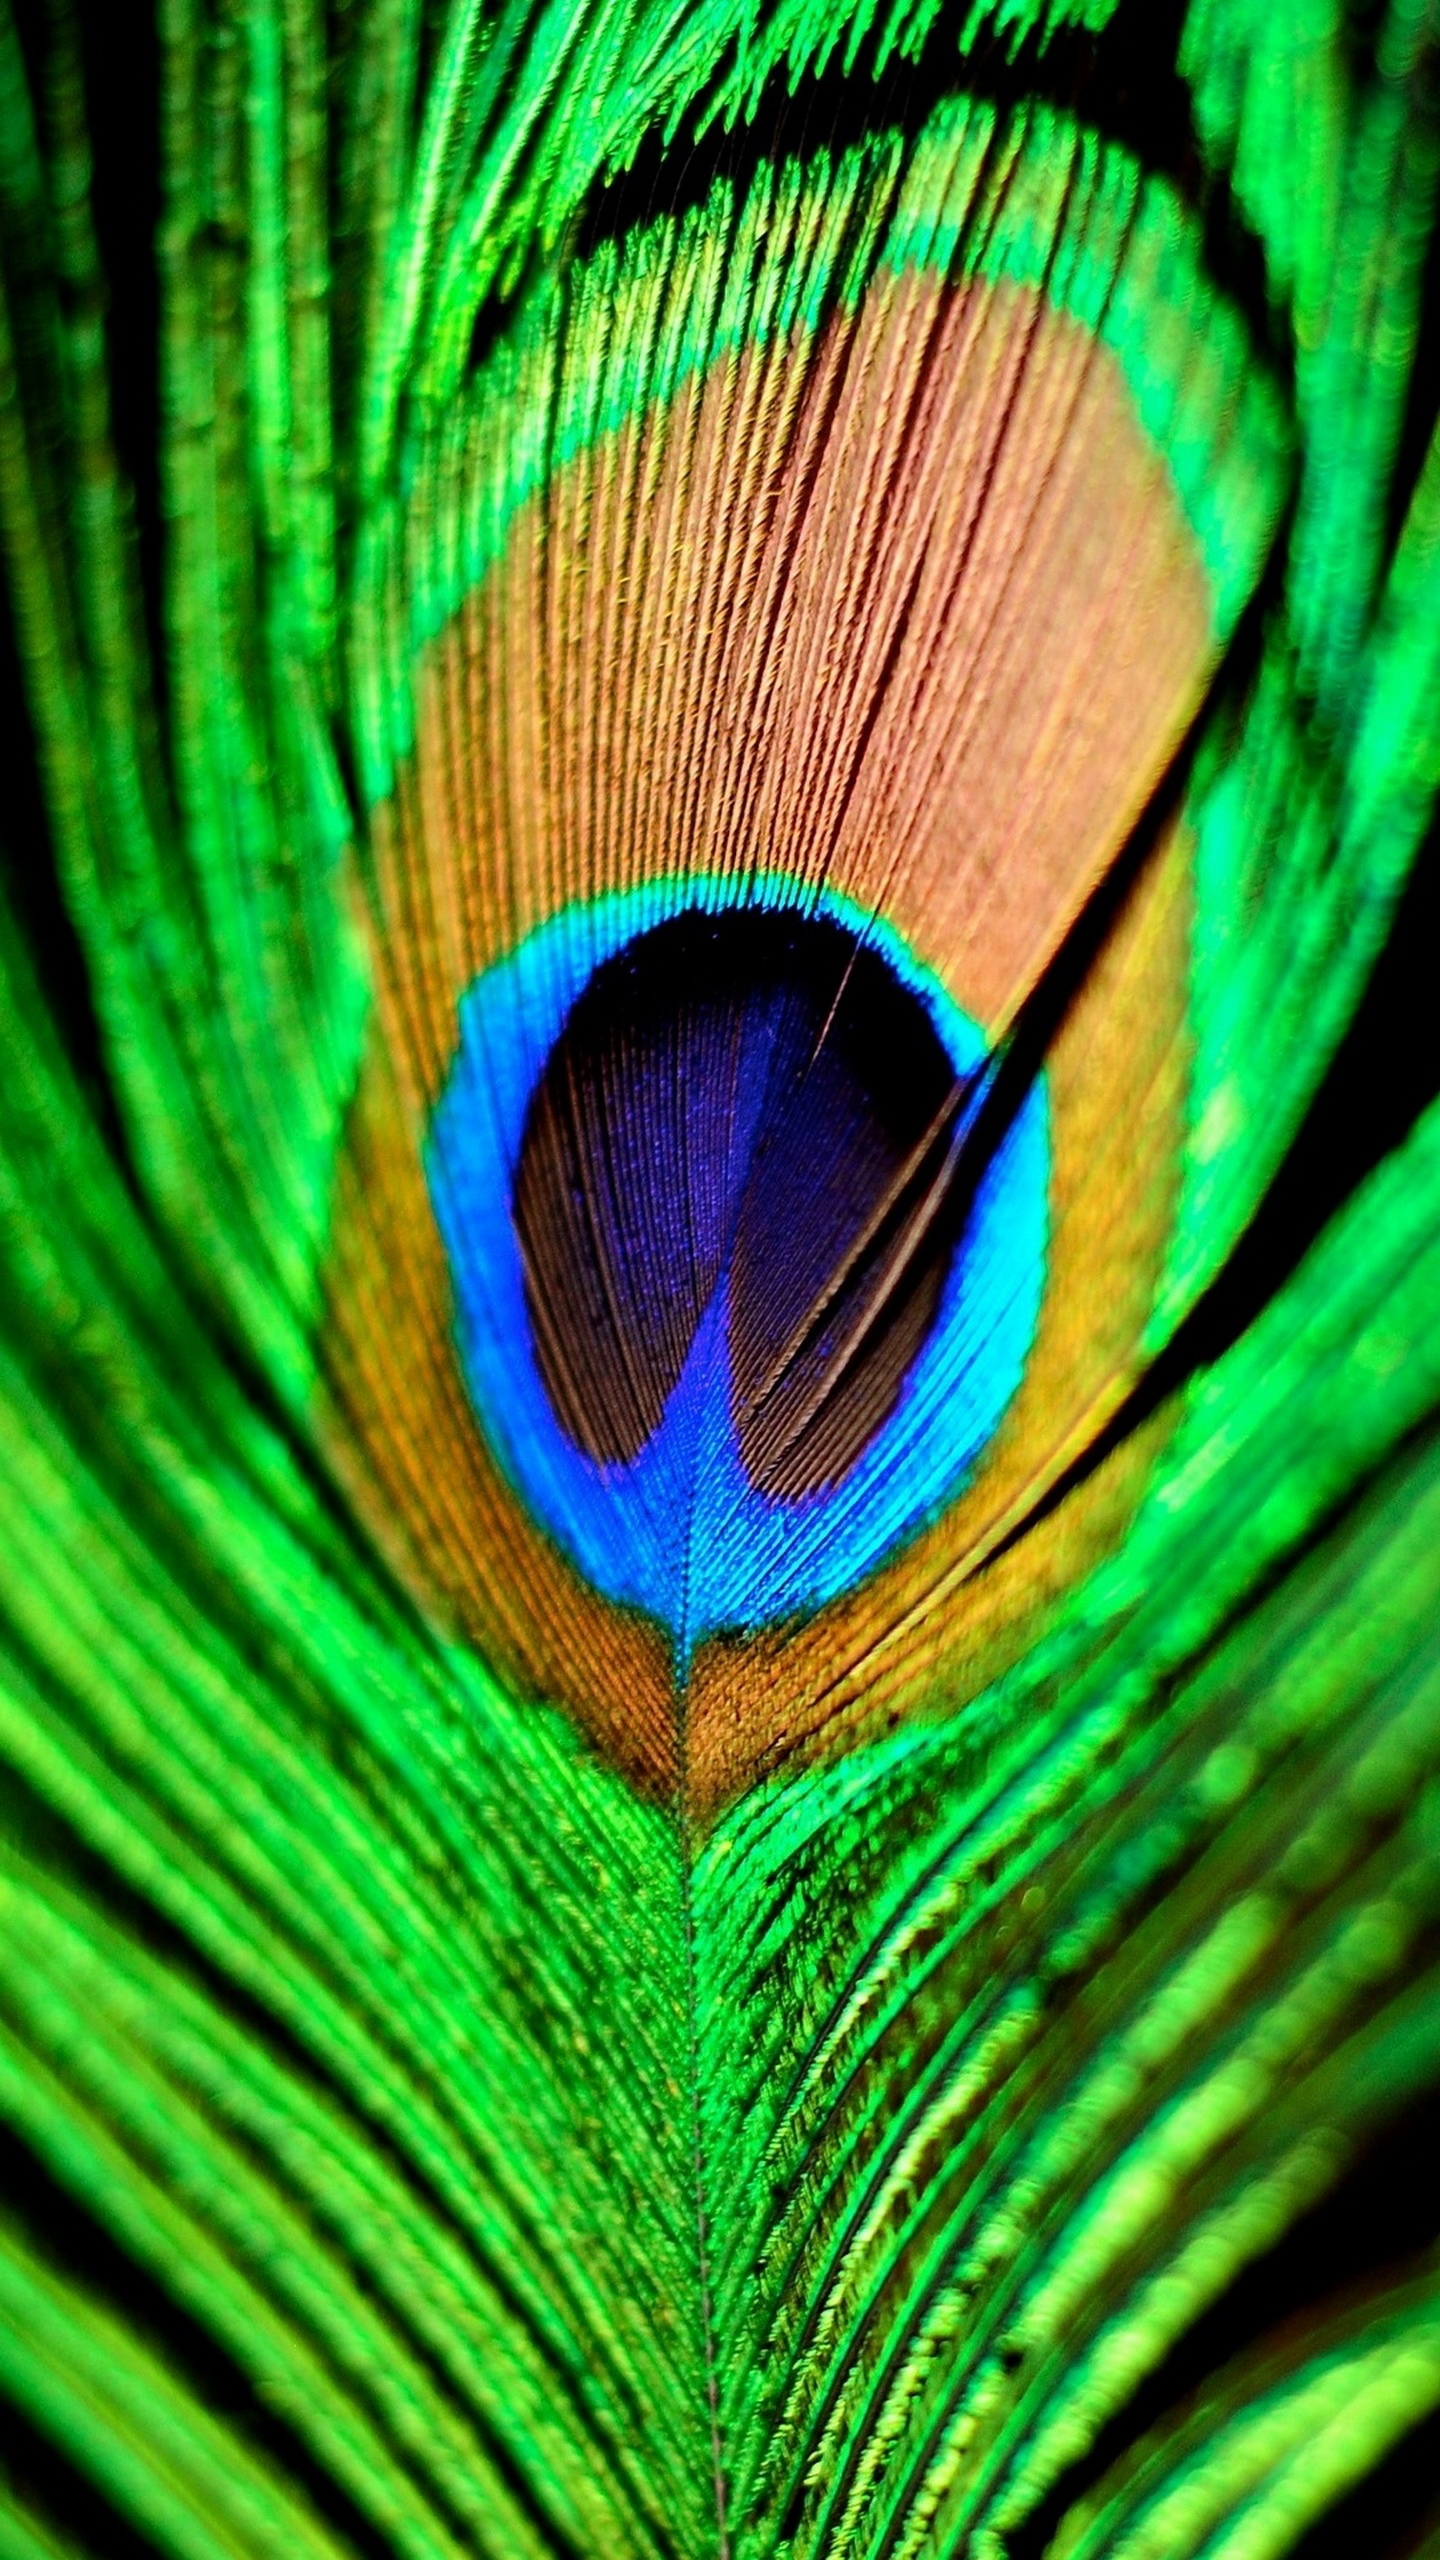 quad hd mobile phone wallpapers 1440x2560 peacock feather 1440x2560